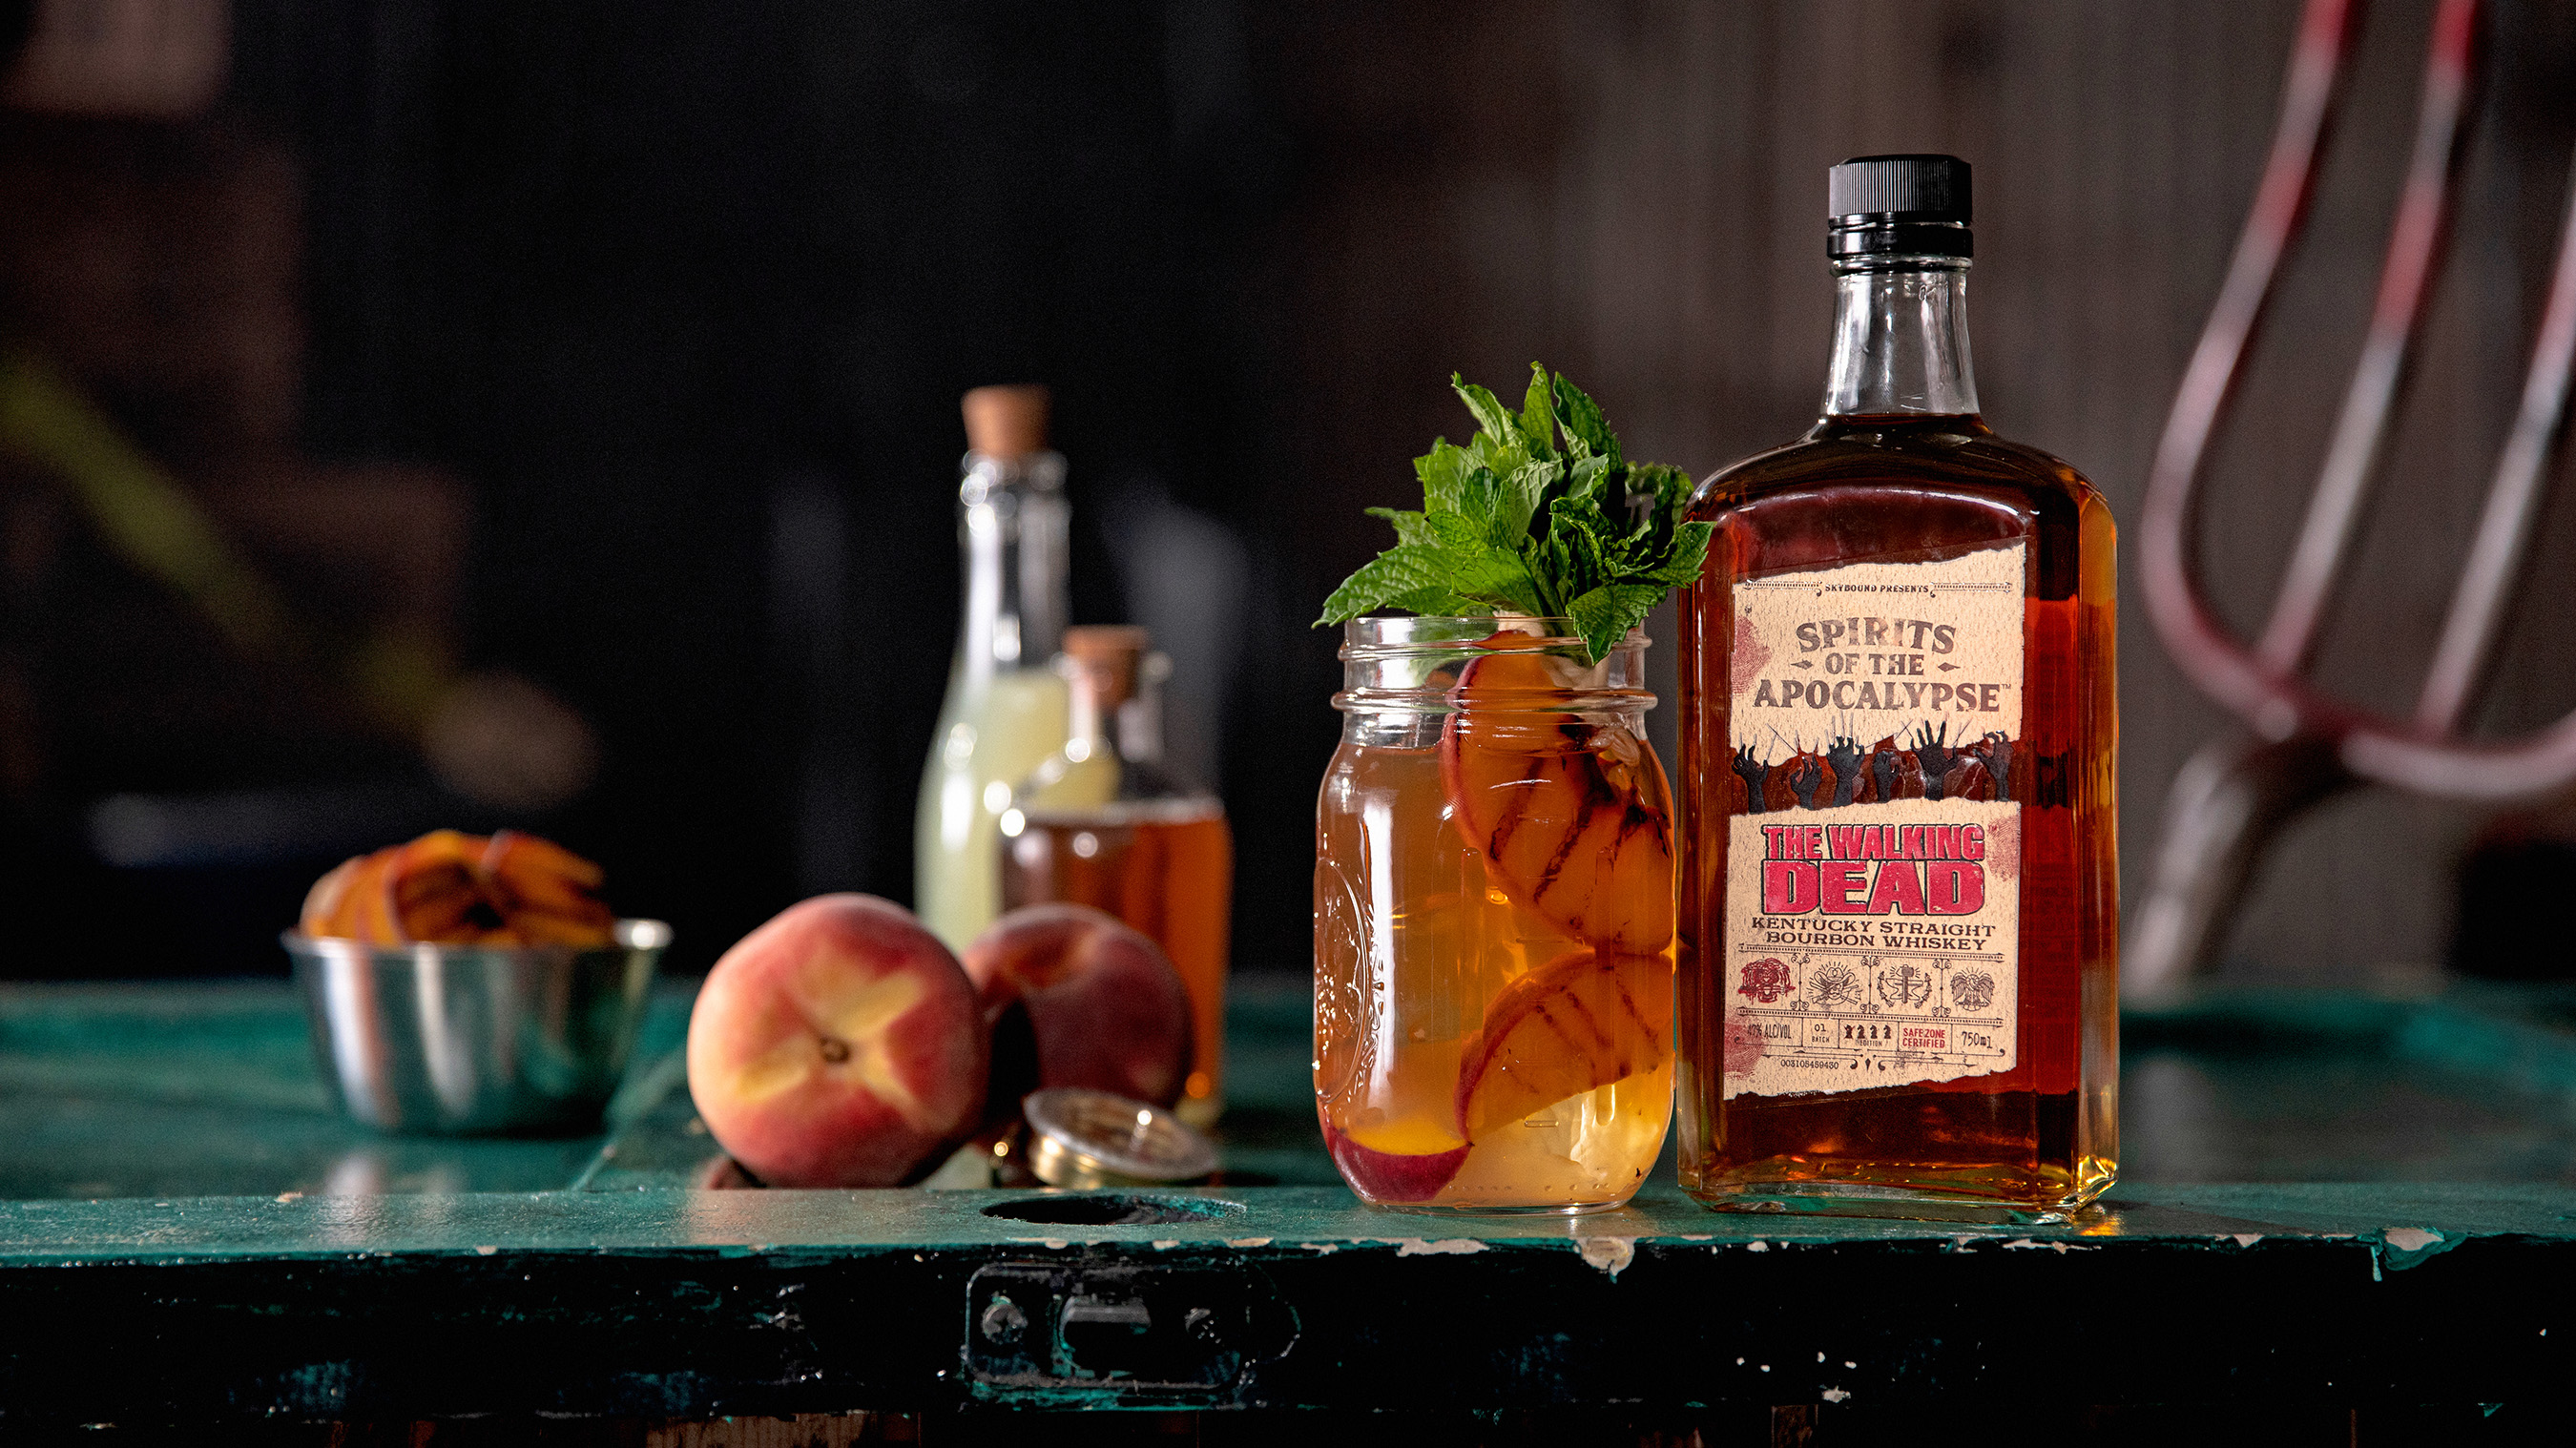 Maggie's Lemonade - 1.25 oz limited-edition The Walking Dead Kentucky Straight Bourbon Whiskey, 2 oz lemonade and 2 oz peach tea. Garnish with mint and grilled peaches.